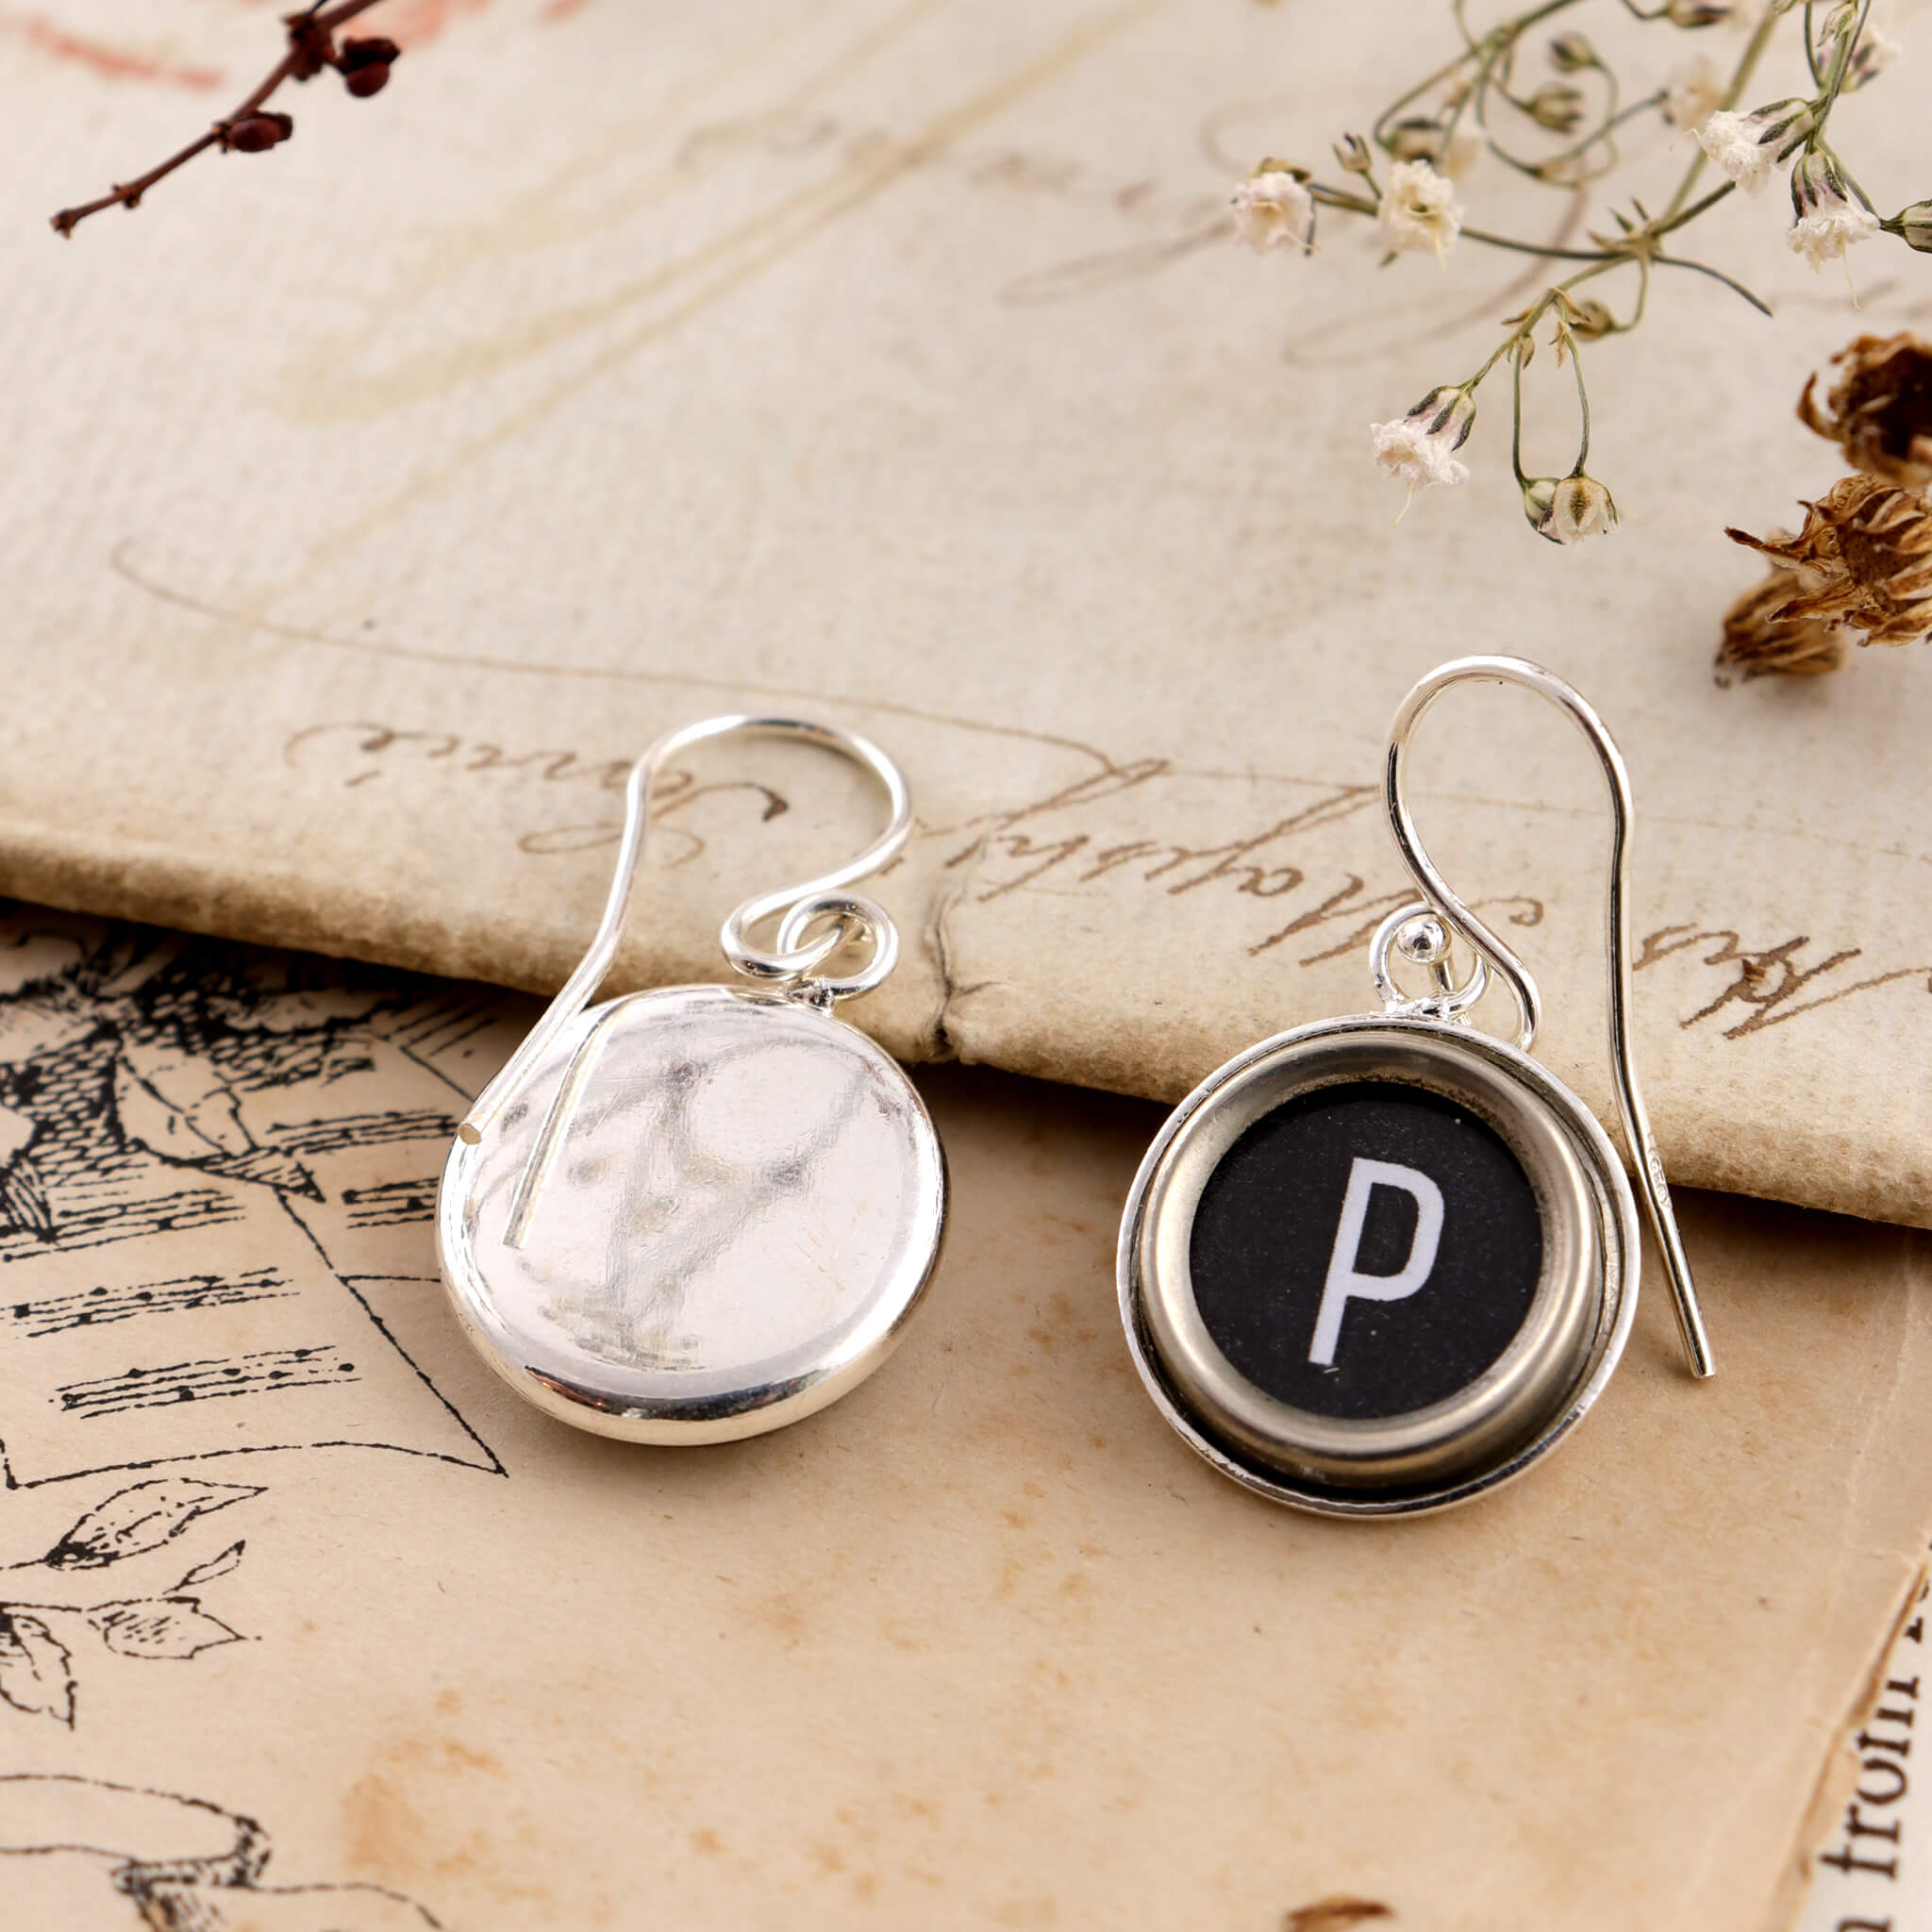 Black initial earrings P made of old typewriter keys one is turned